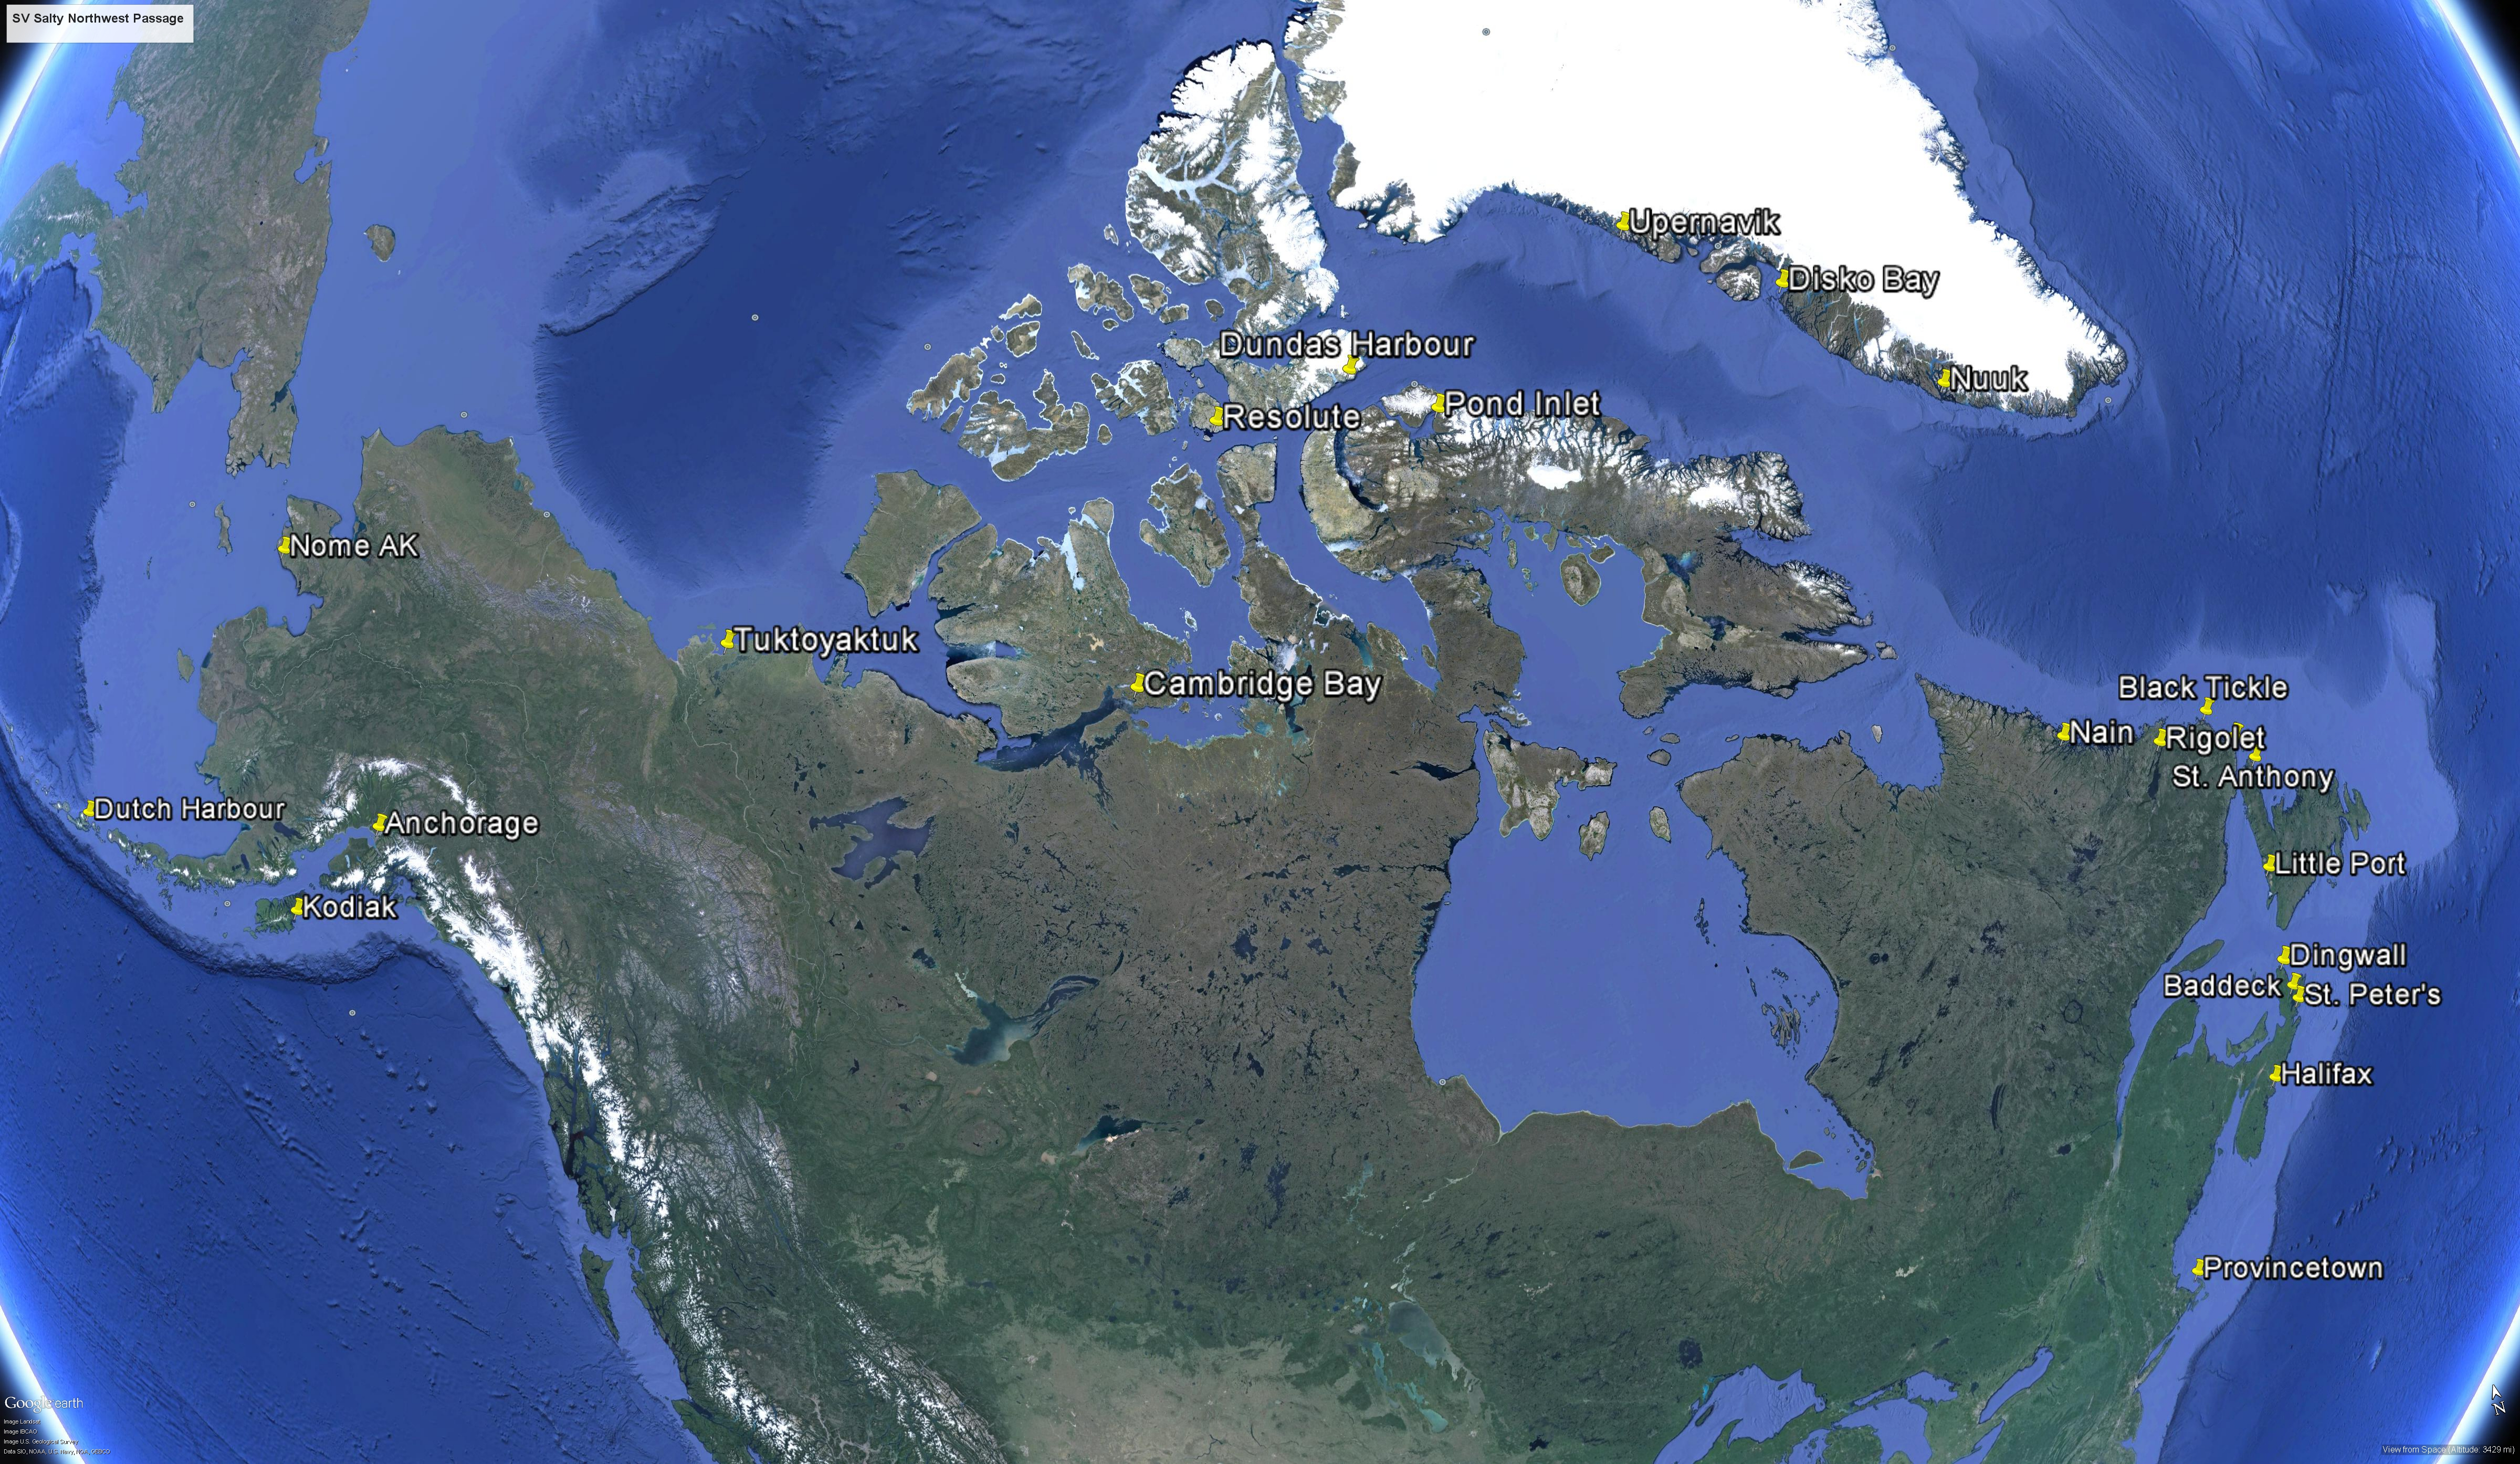 Northwest Passage 2015 details